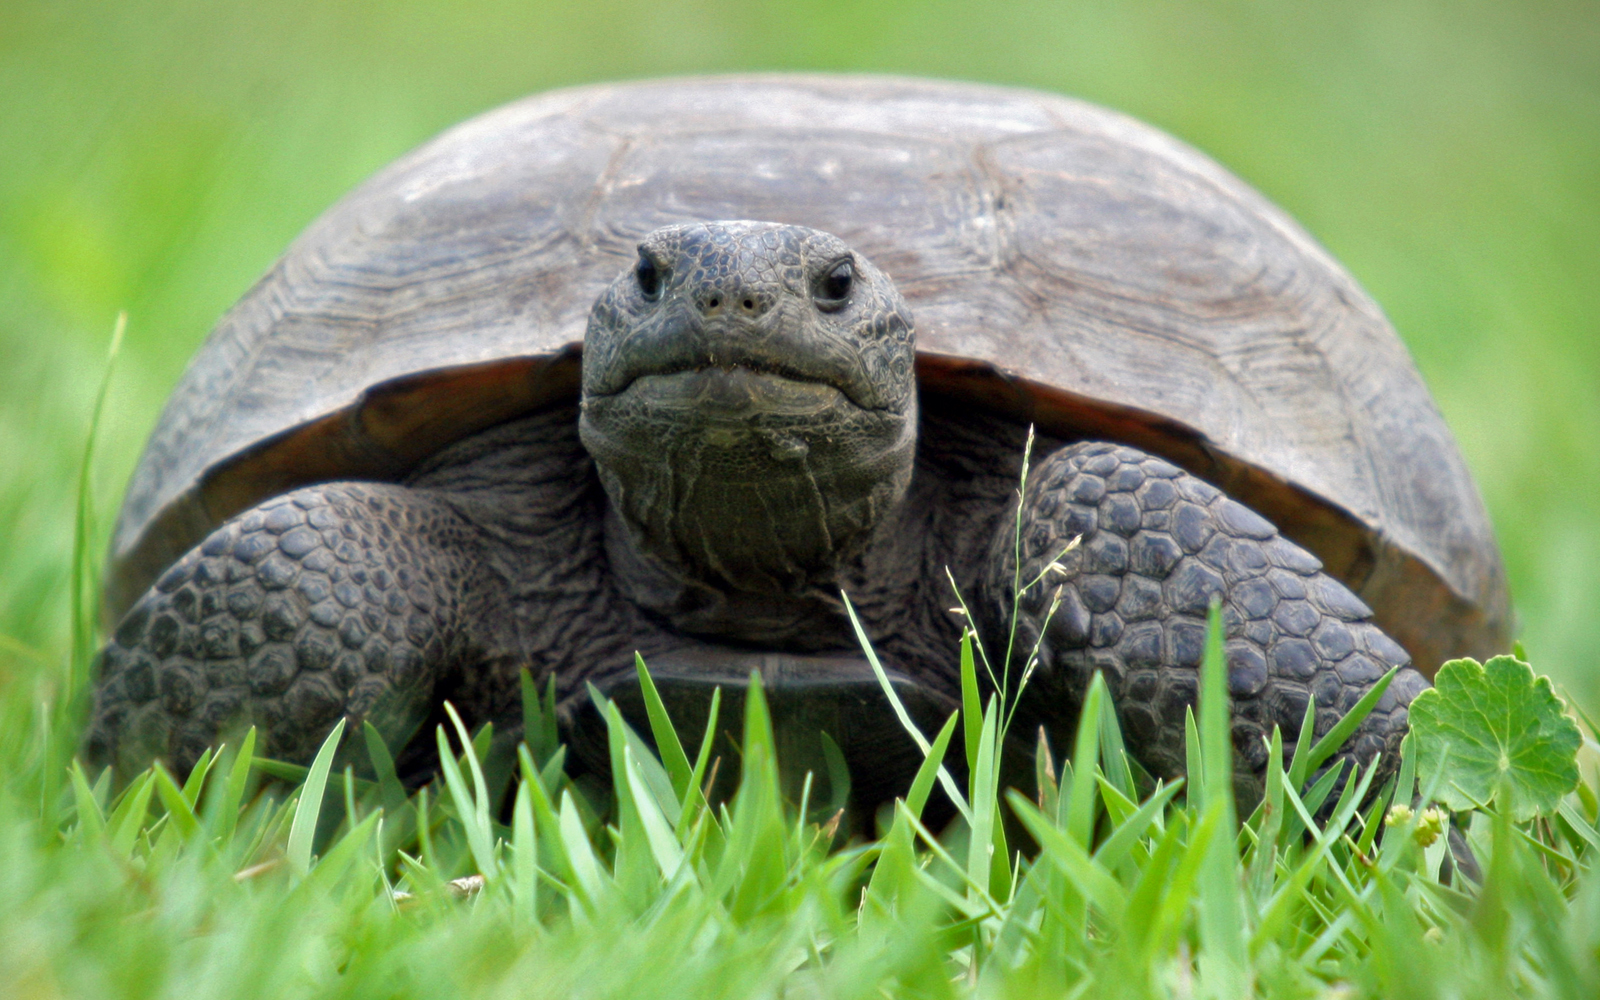 Helpful Things You Can Do To Save Turtles and Tortoises from Disappearing